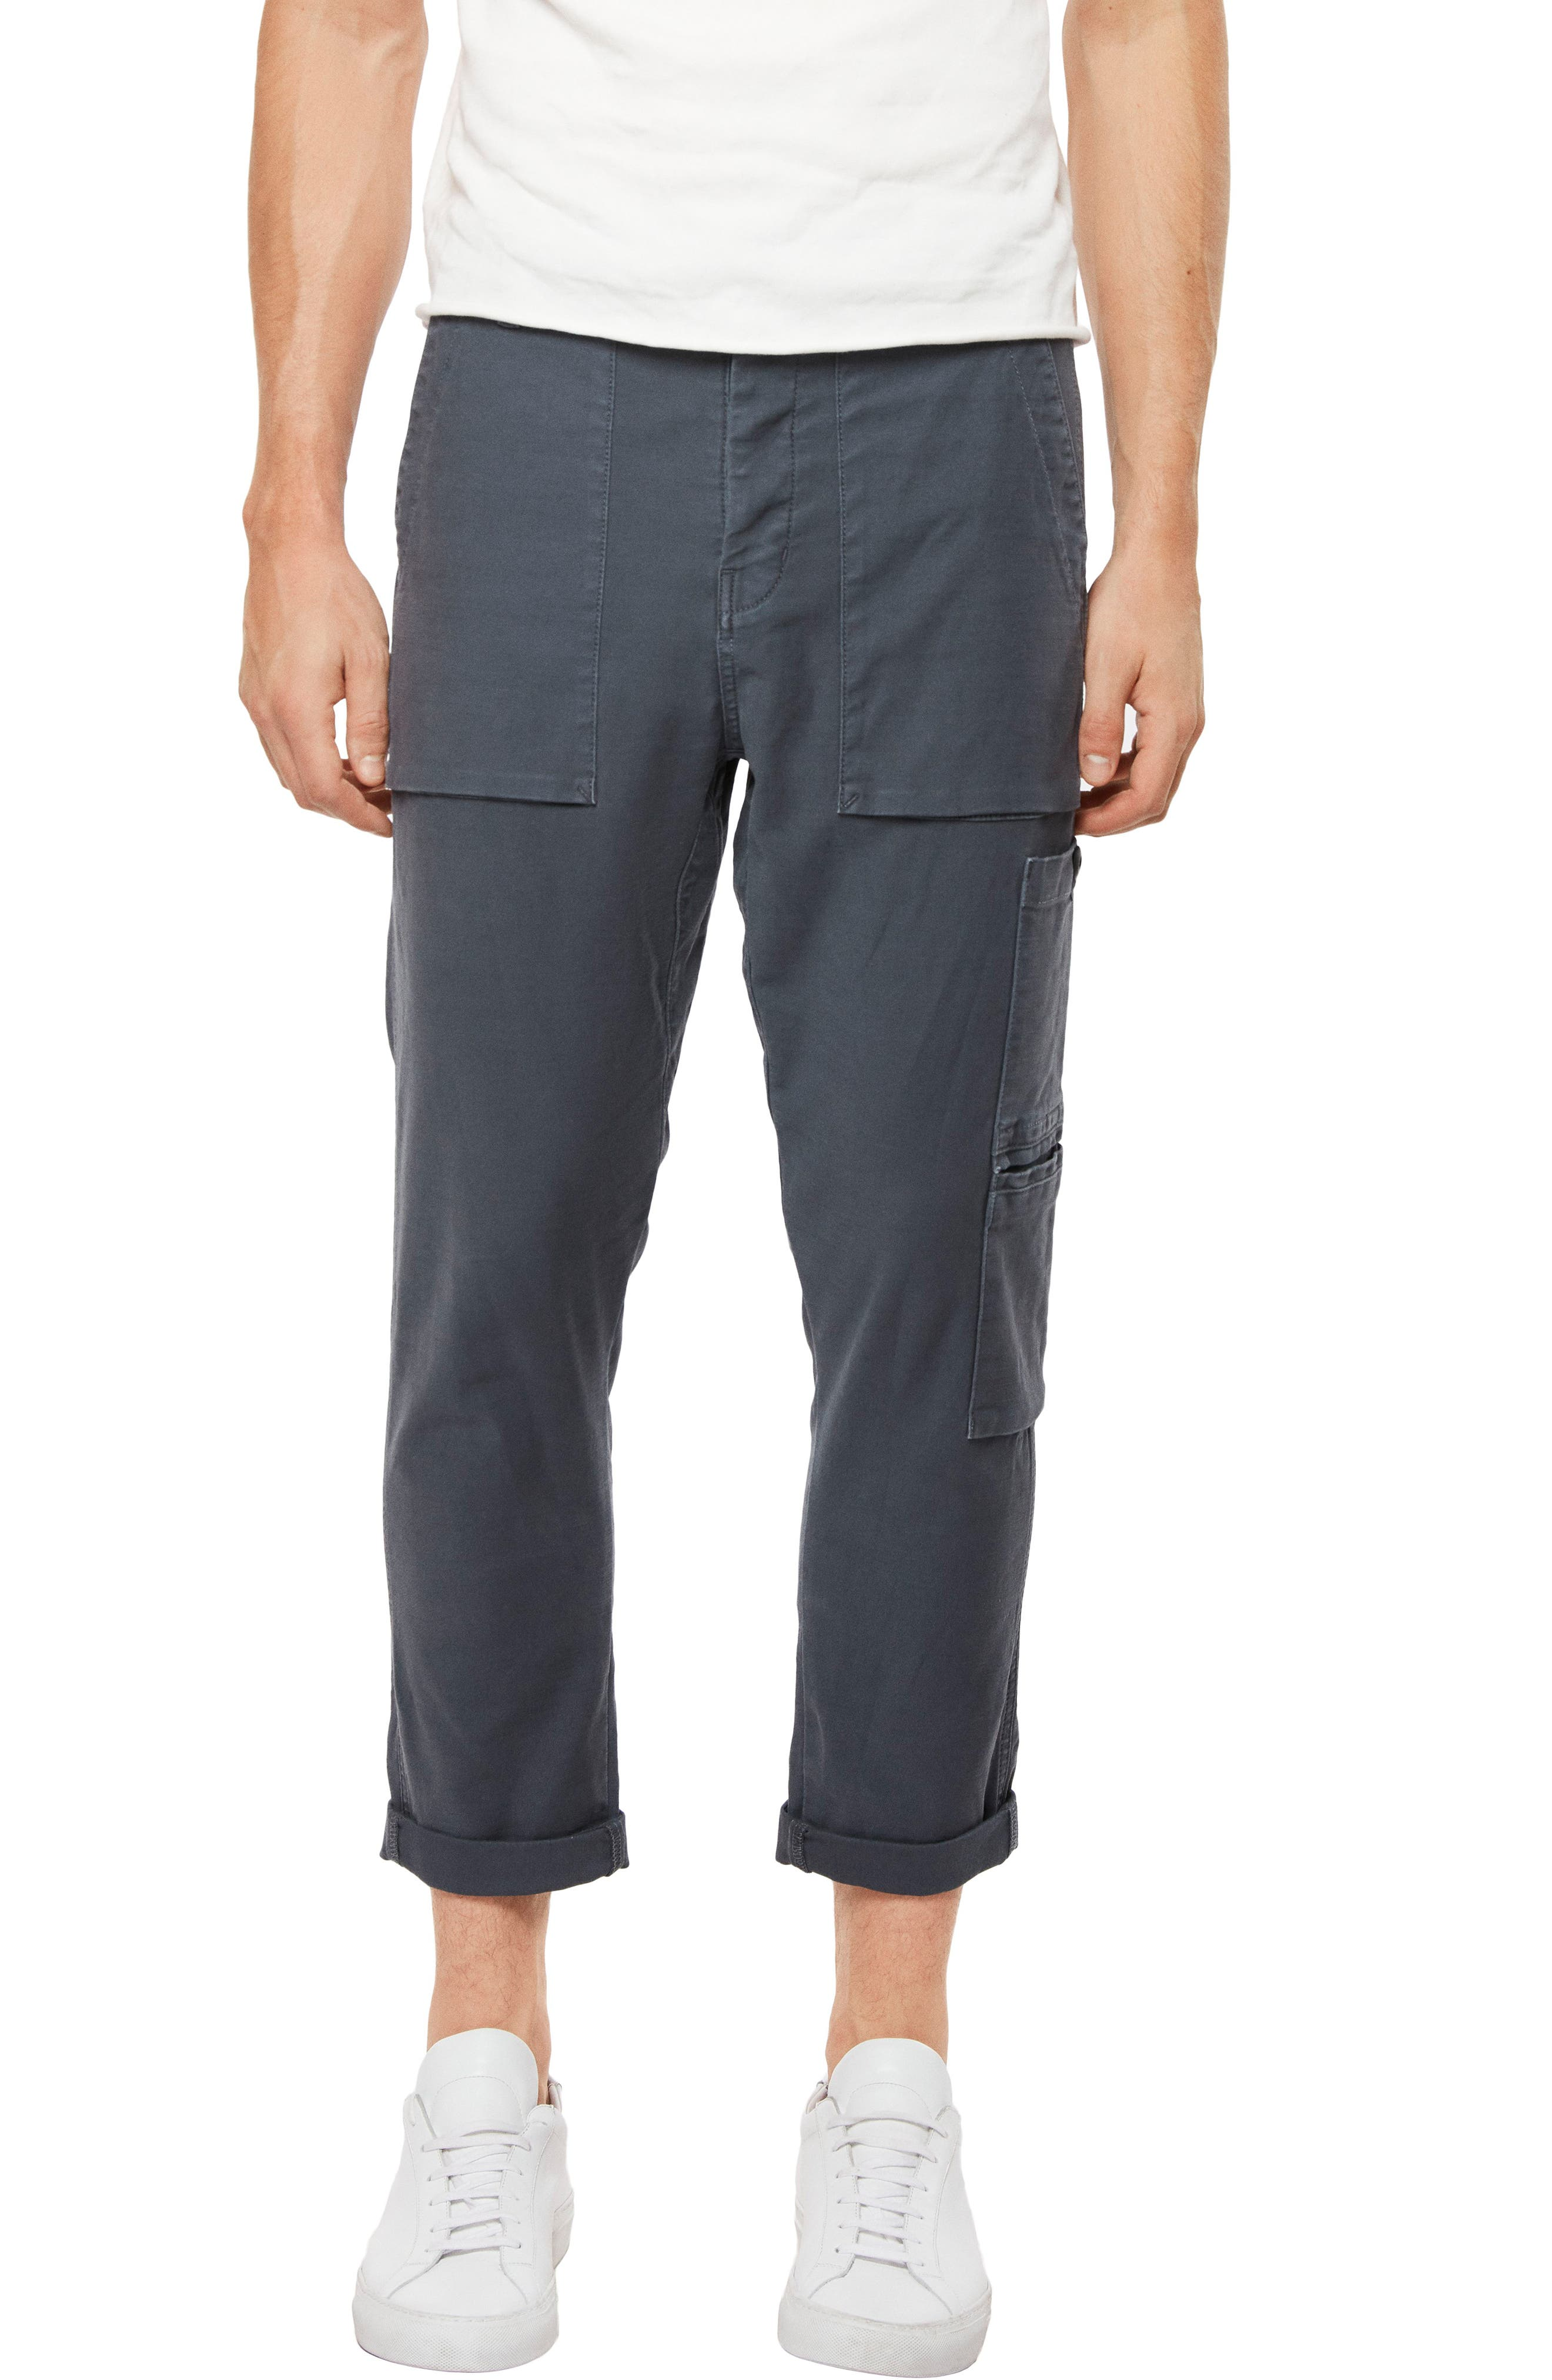 Alternate Image 1 Selected - J Brand Koeficient Relaxed Fit Cargo Crop Pants